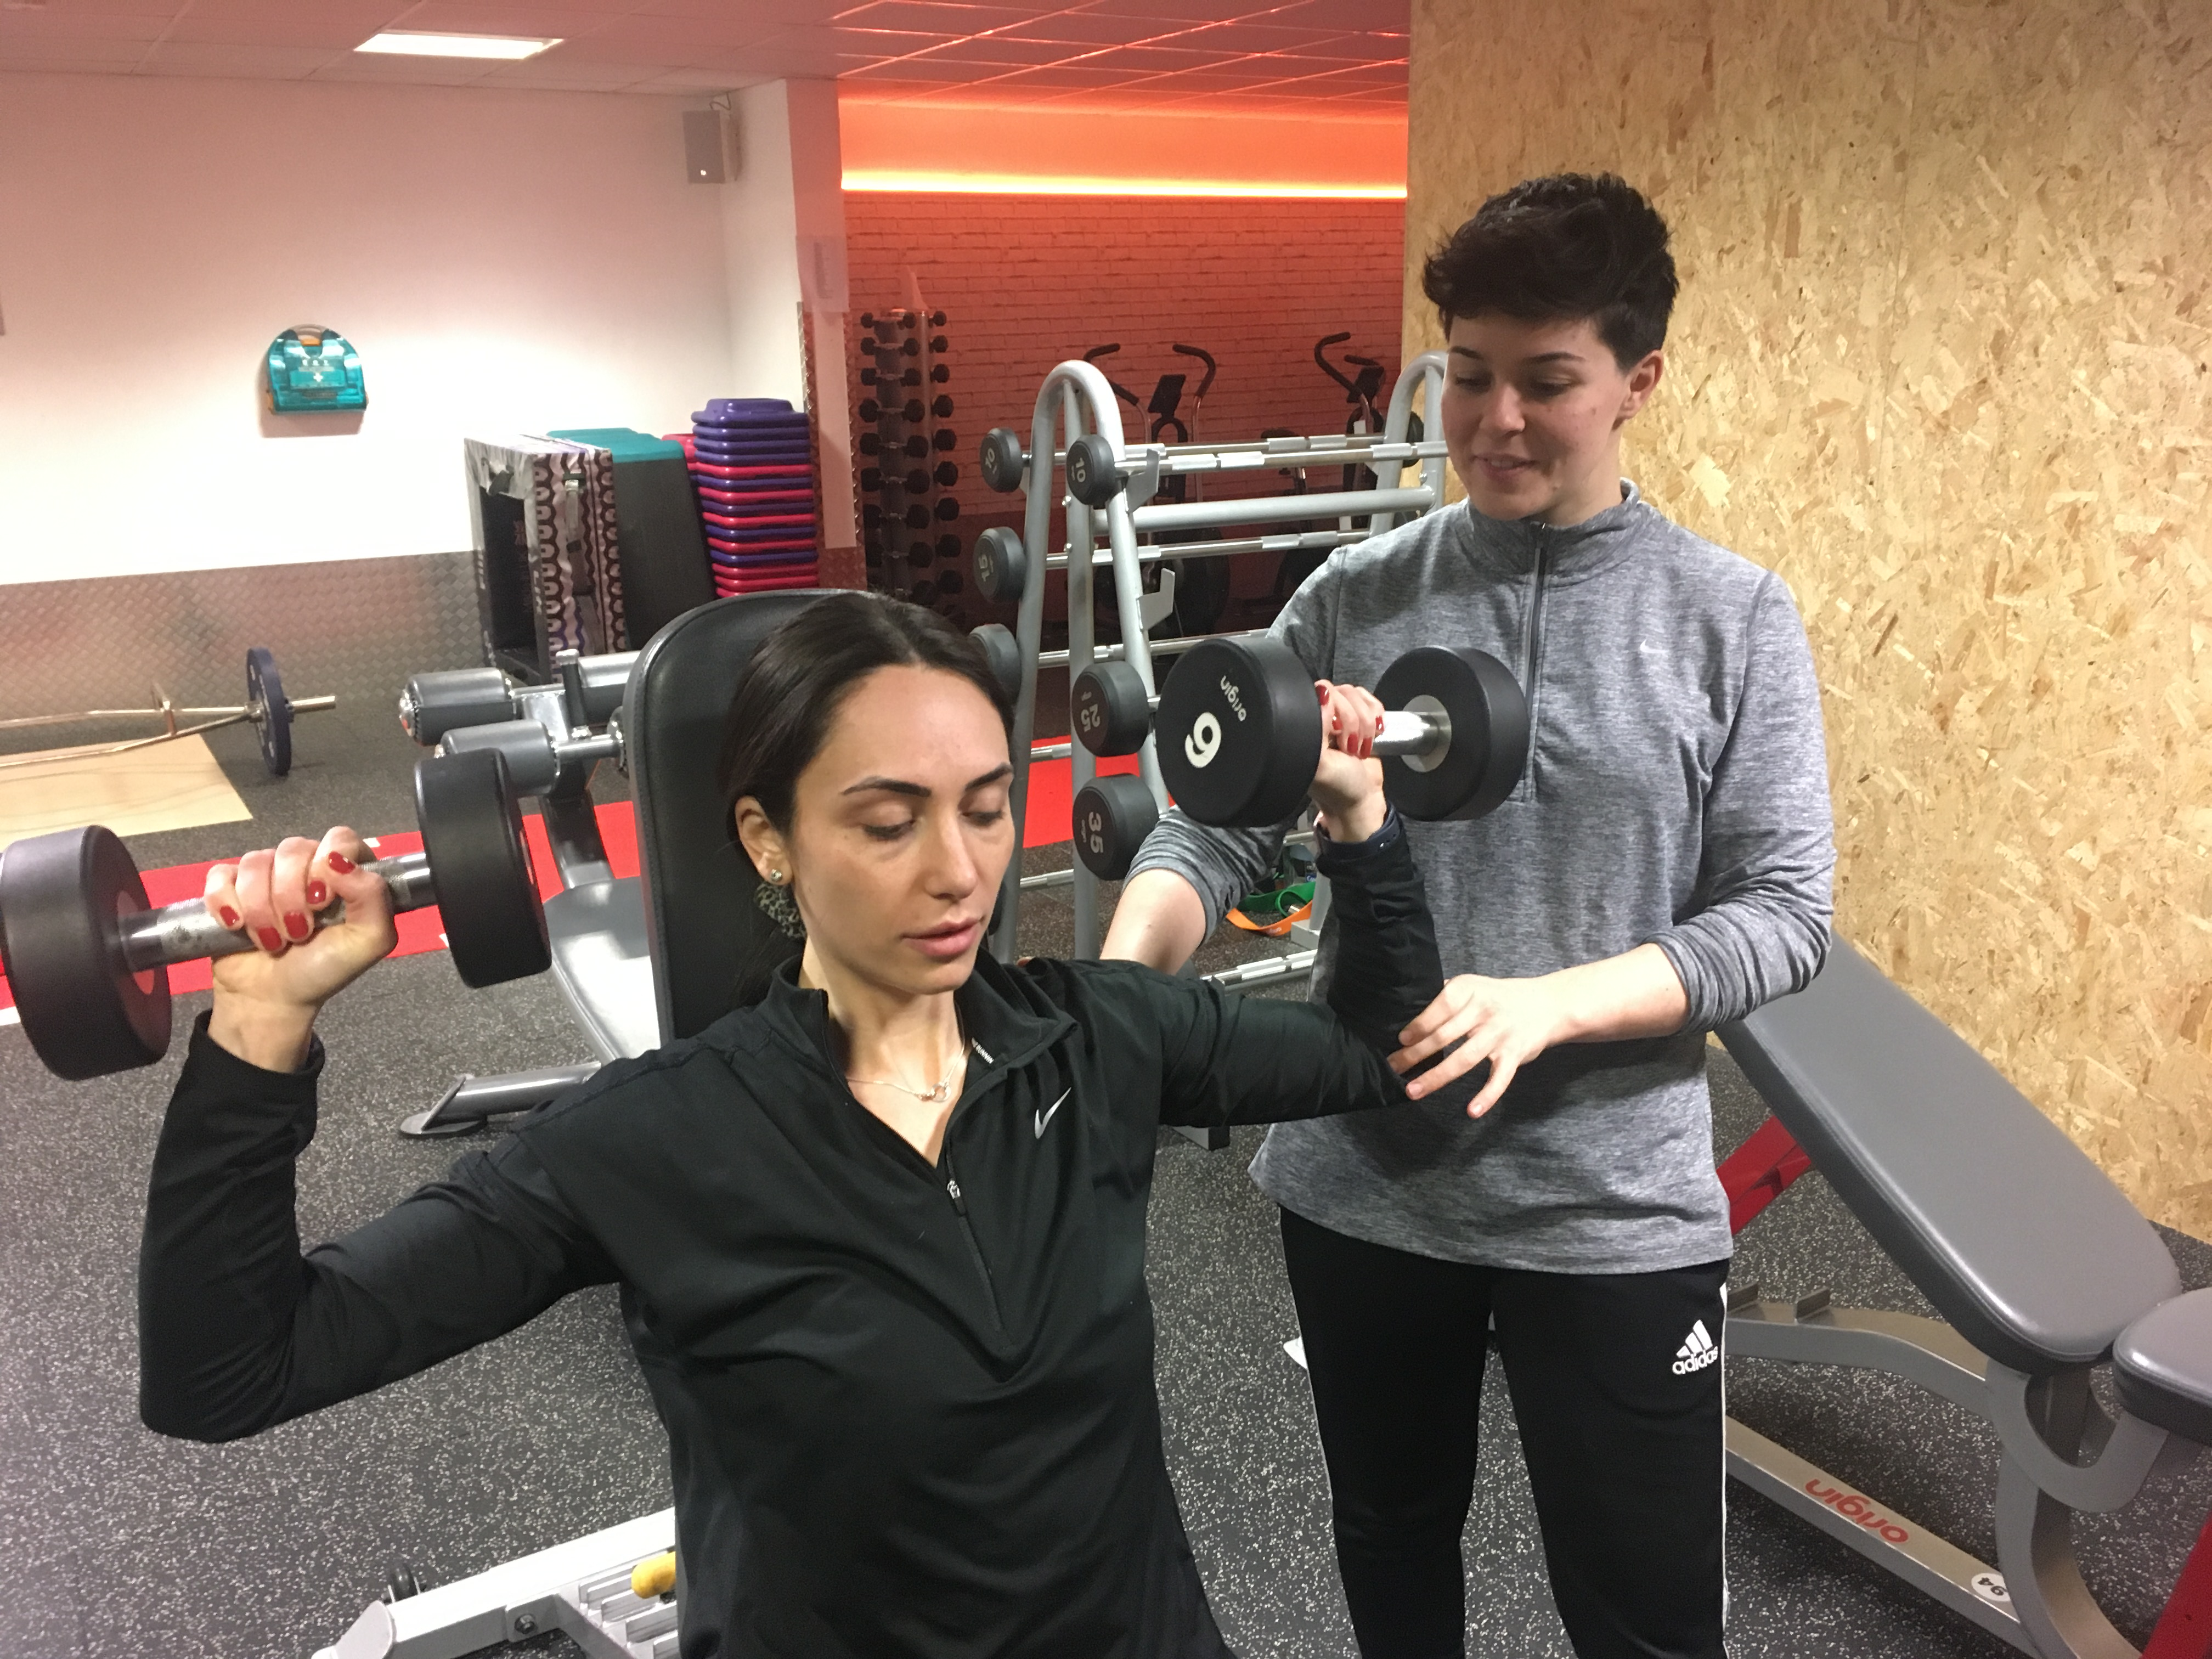 Rebound Sports Therapy - Blackpool, Lancashire FY3 8ER - 07940 796903   ShowMeLocal.com